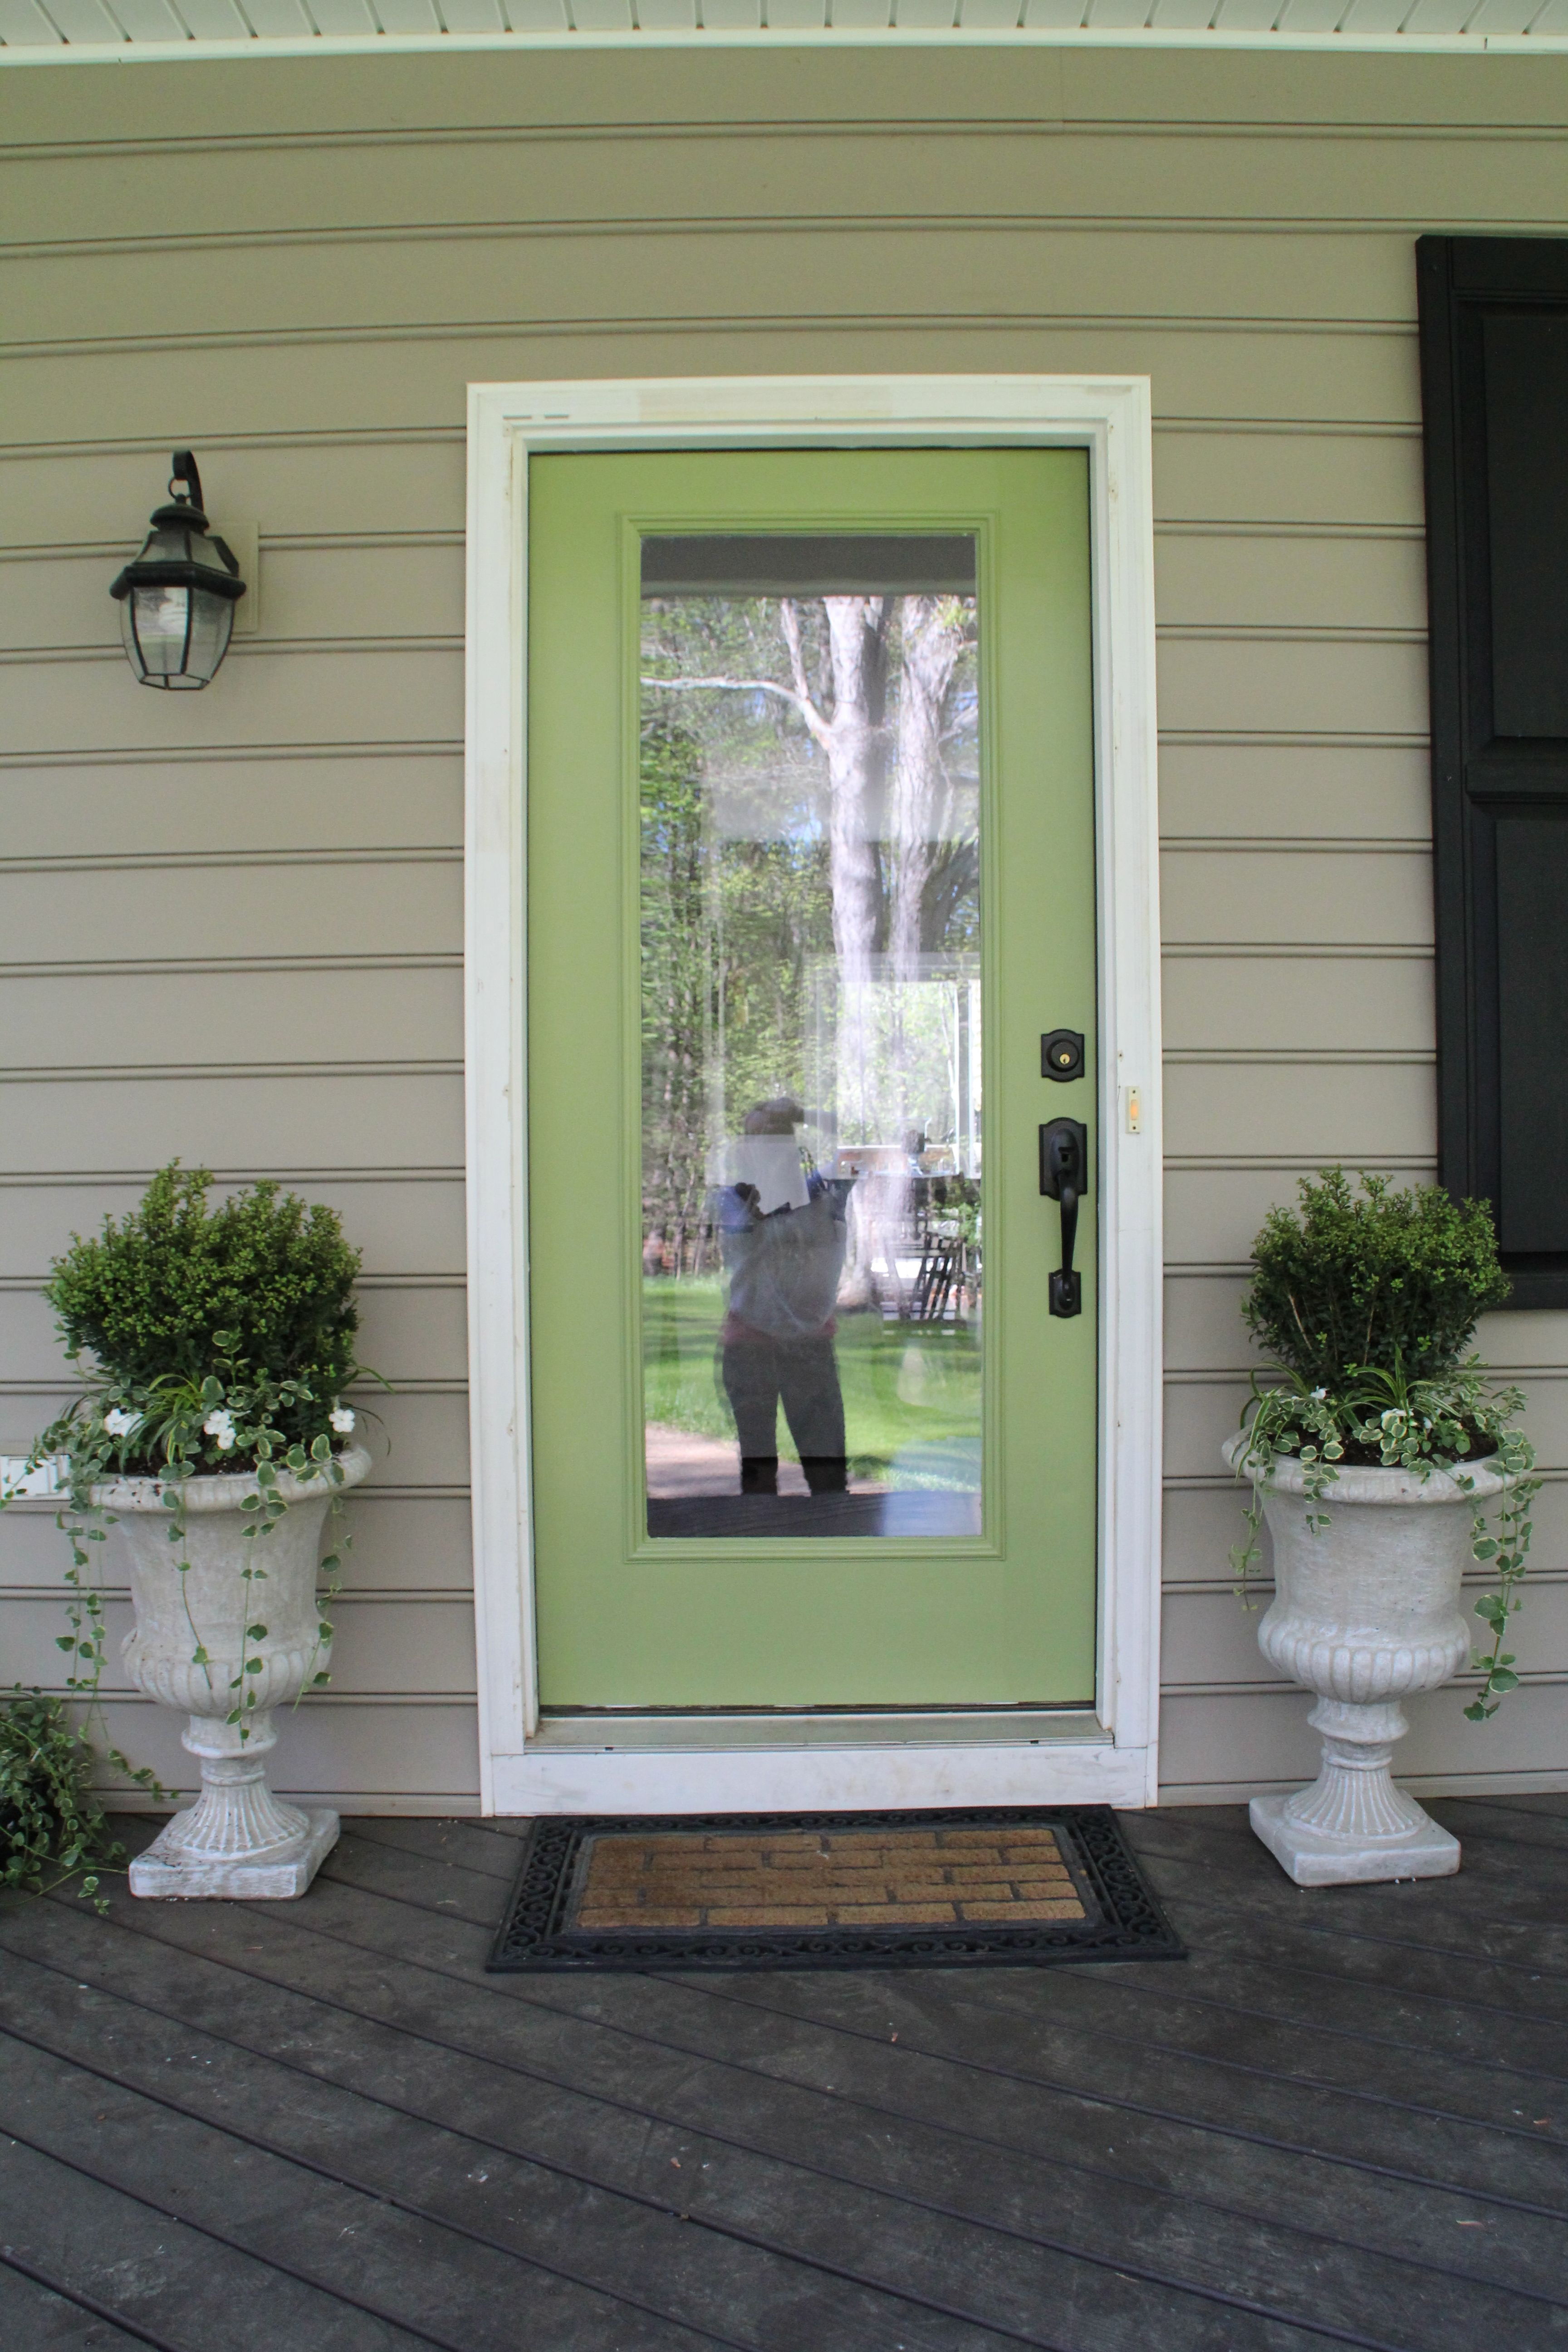 Pictures of front doors with storm doors - I Am So In Love With Our Front Door Now That It S All Pretty And Green We Andy I Helped A Little Removed The Storm Door And Although It Left Some Repair